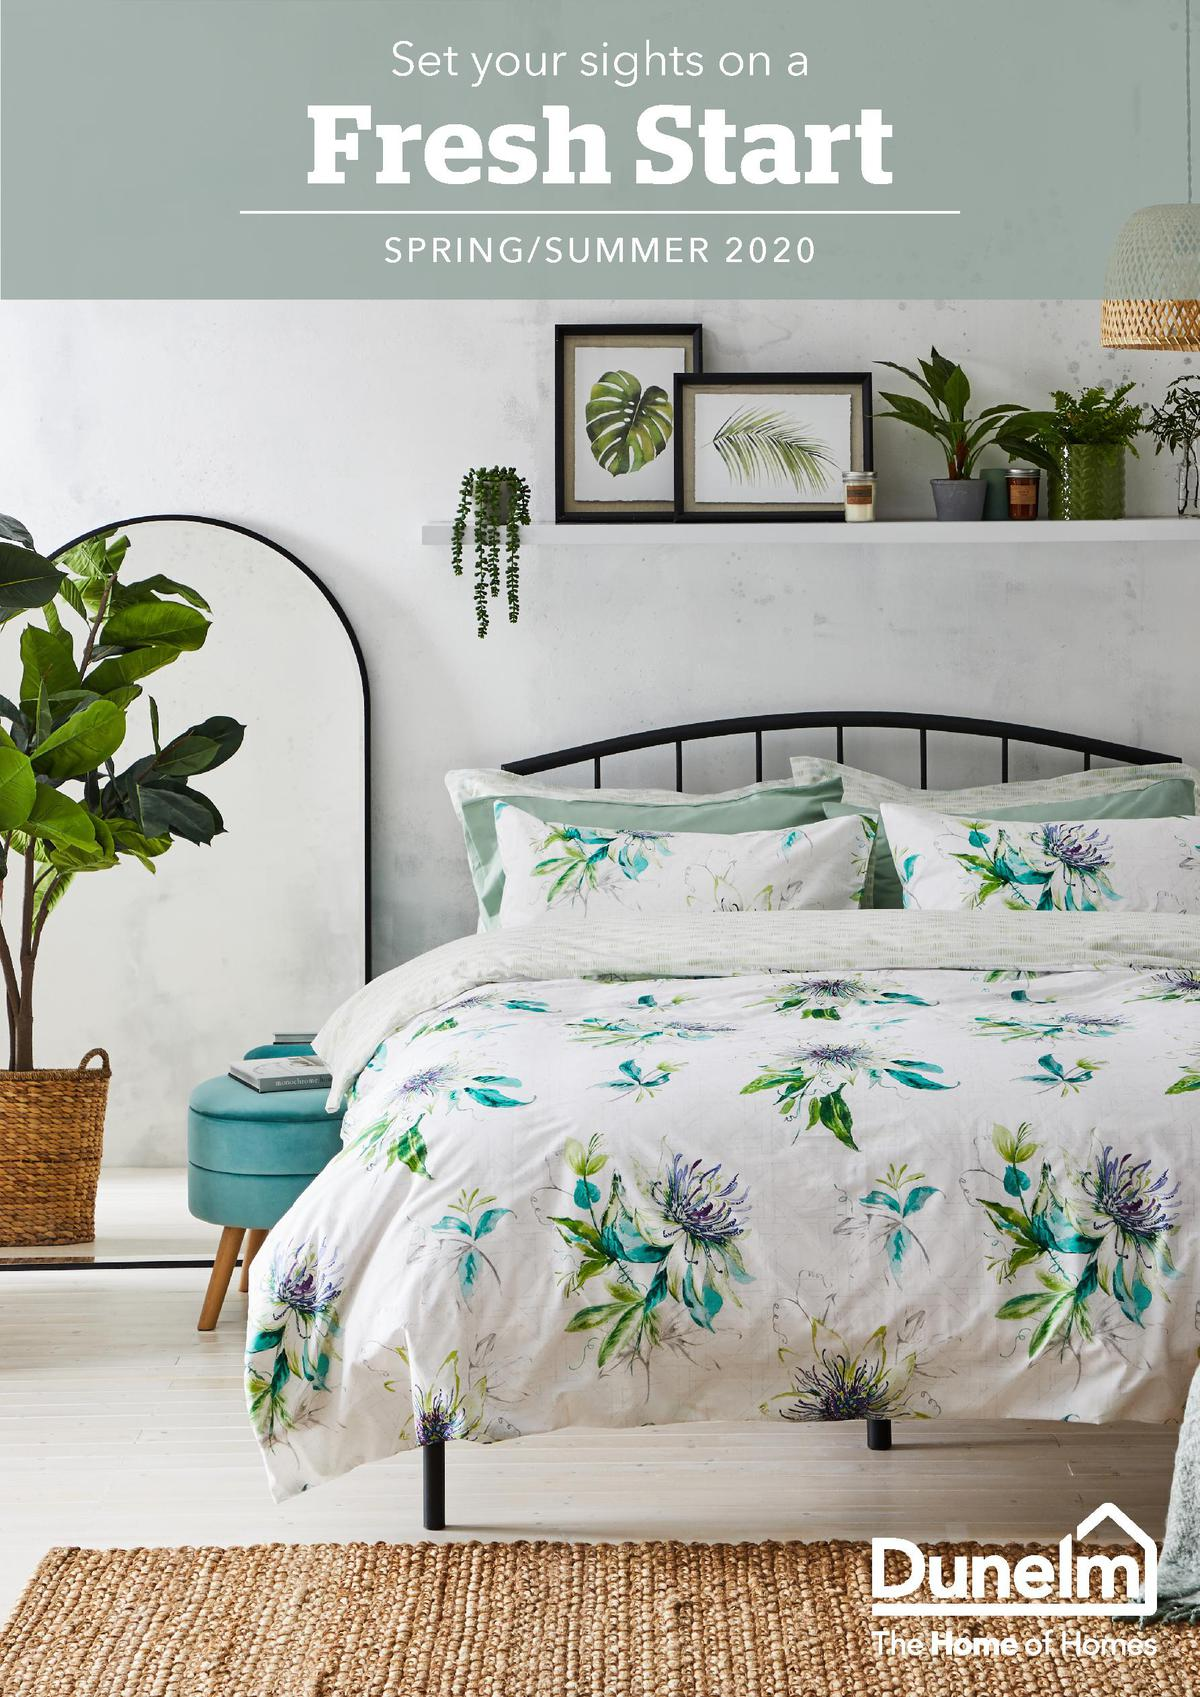 Dunelm Spring Catalogue Offers from February 15